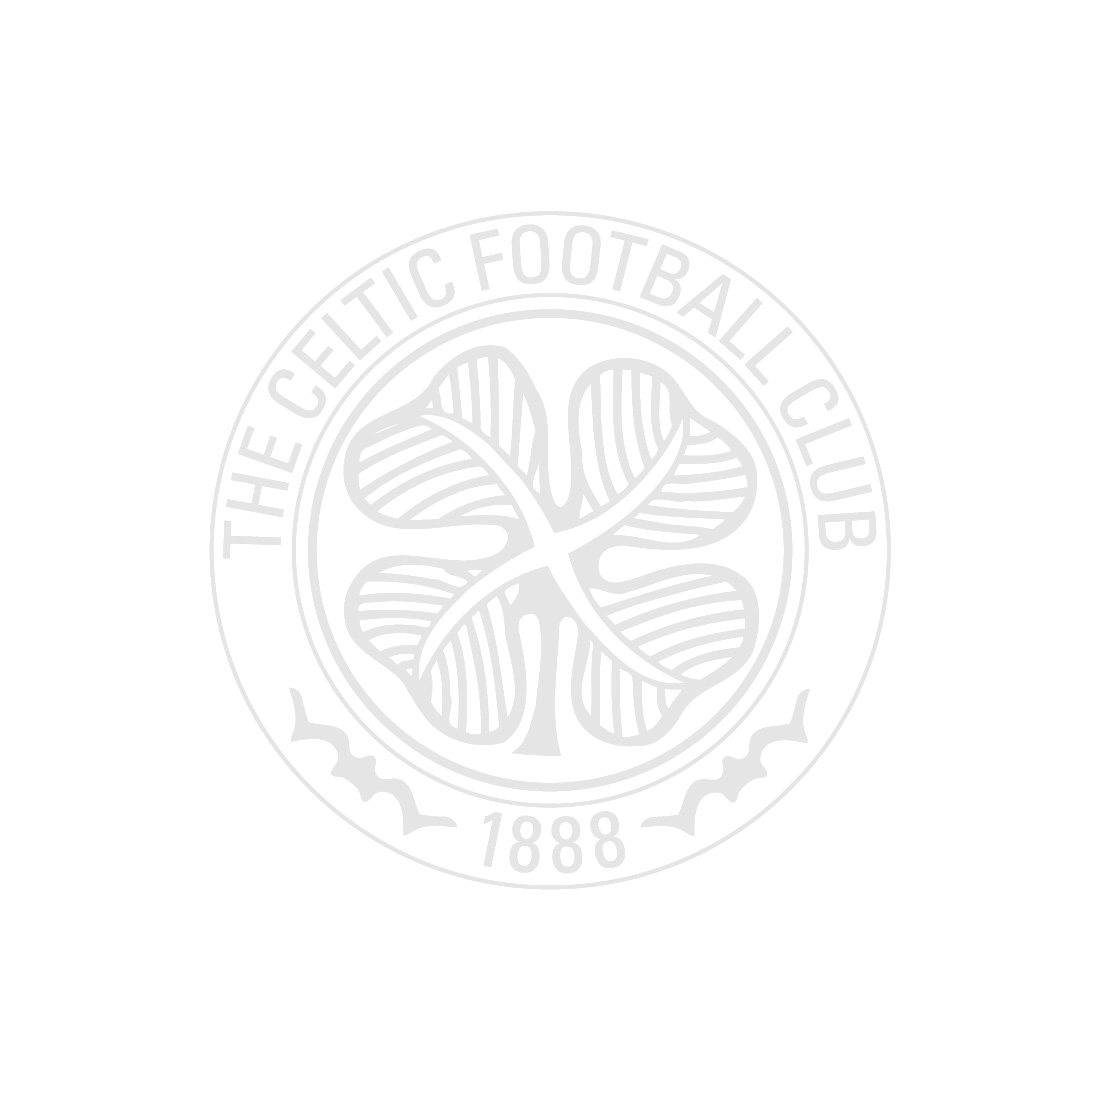 This Is How It Sounds To Be Celtic CD